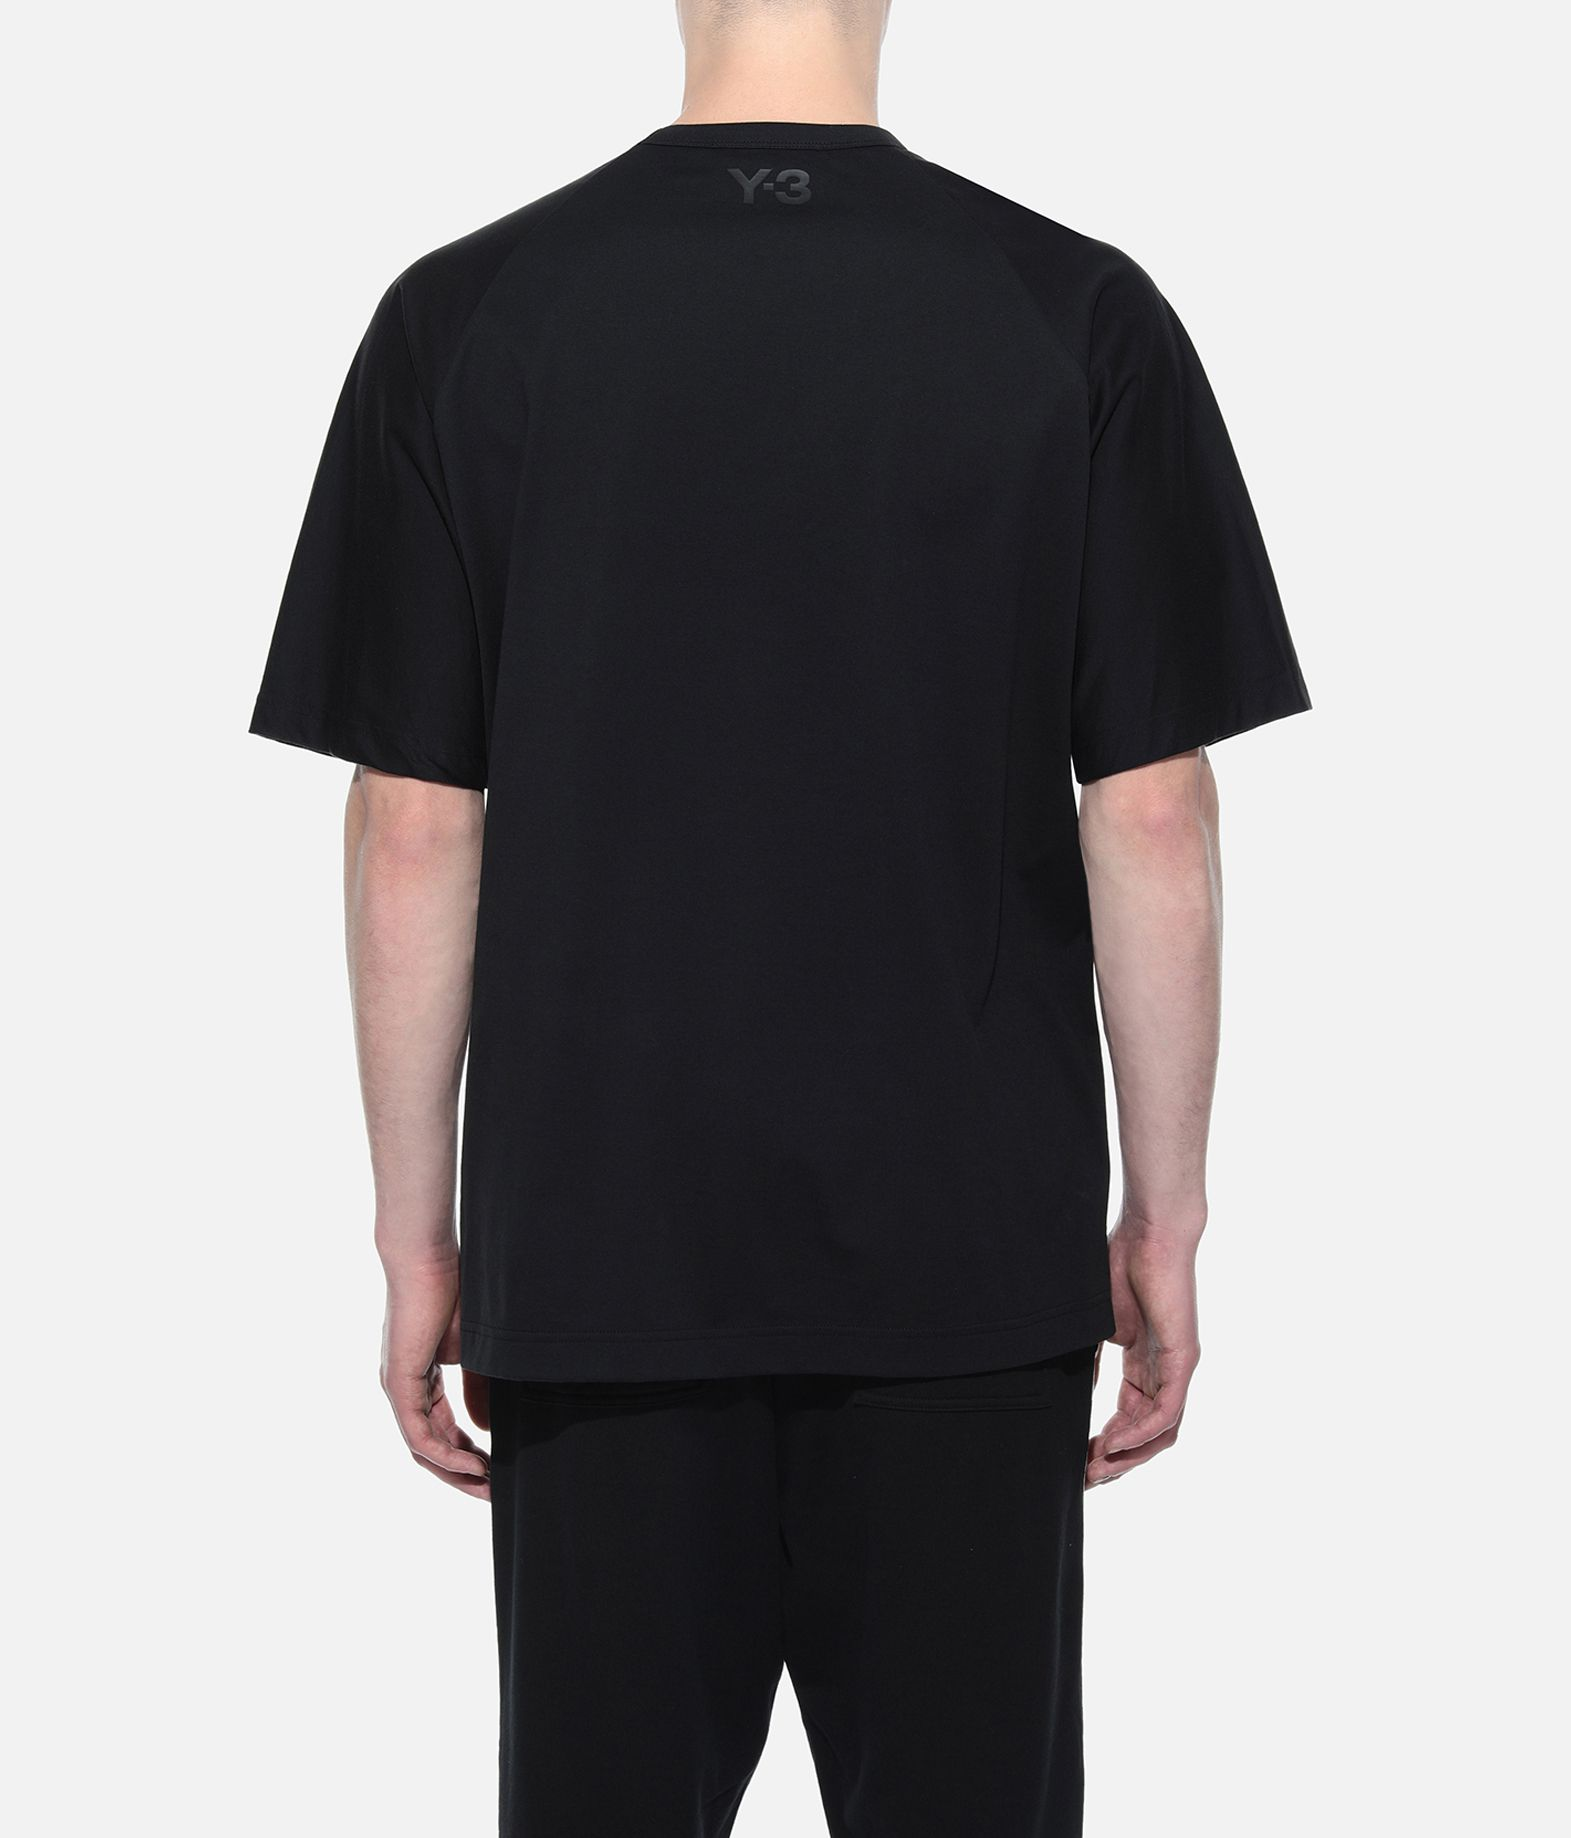 Y-3 Y-3 3-Stripes Packable Tee Short sleeve t-shirt Man d